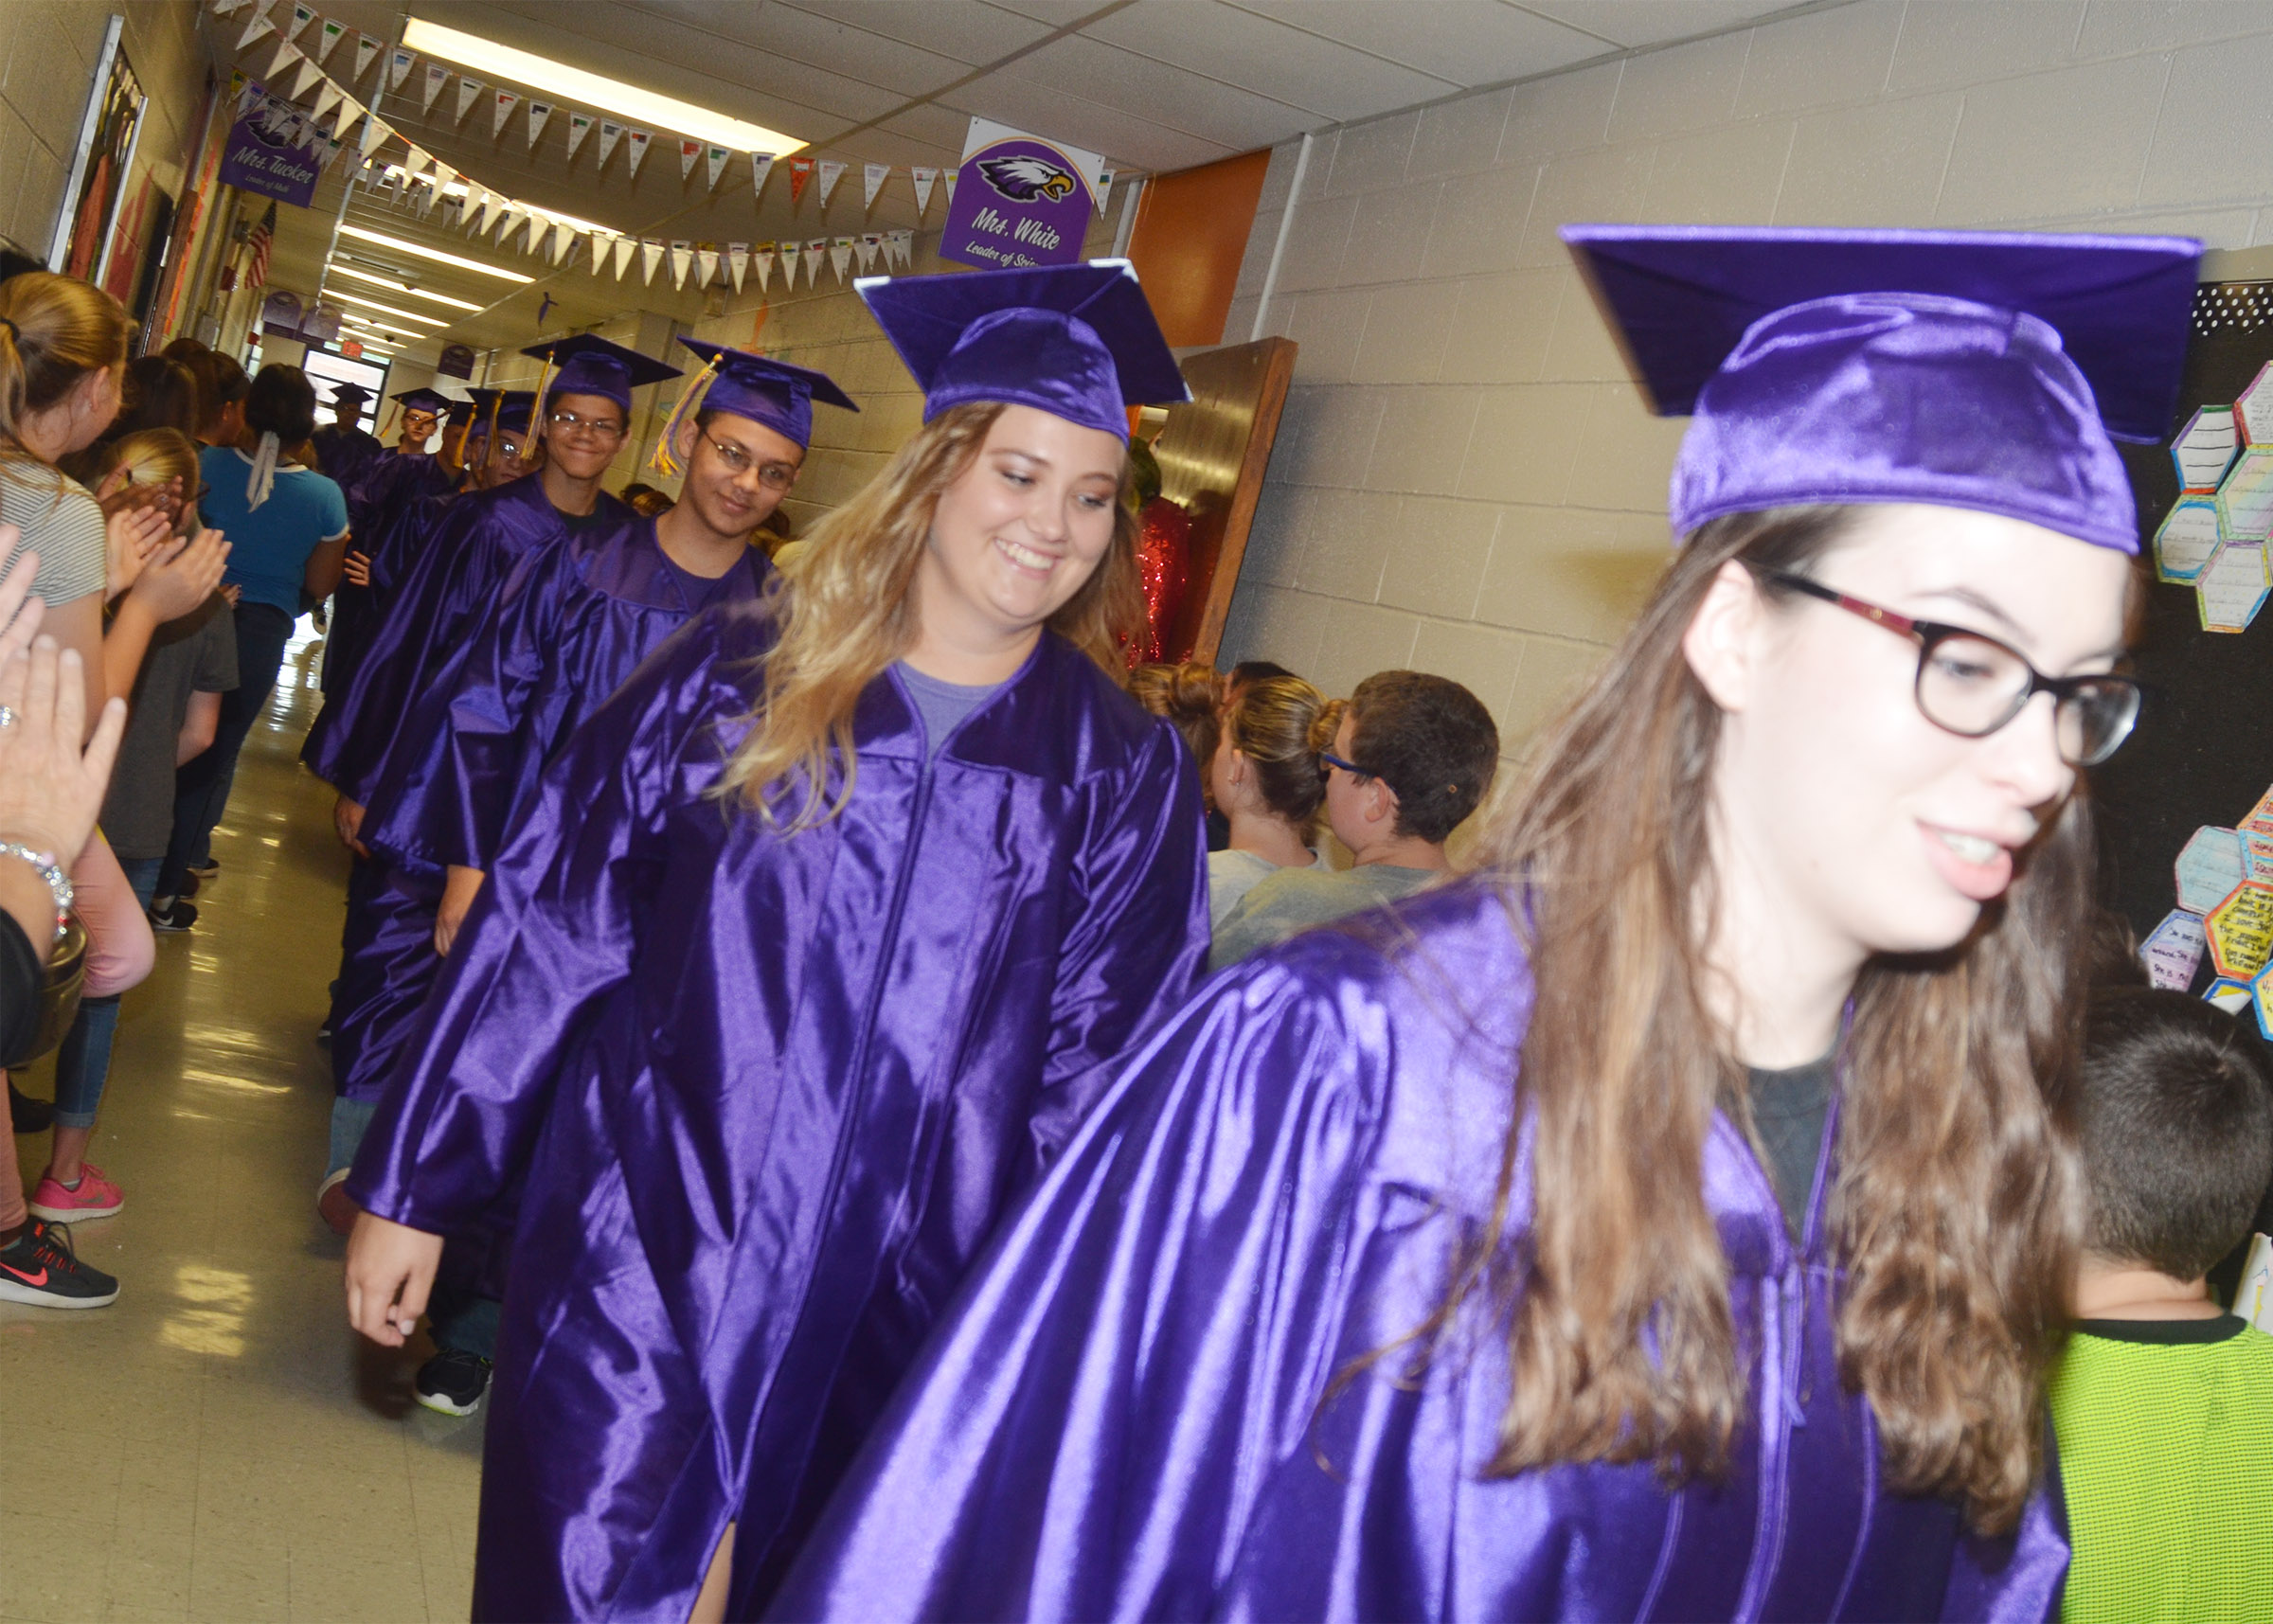 CHS seniors Brenna Wethington, at left, and Laura Lamb walk down the hallways at CMS.